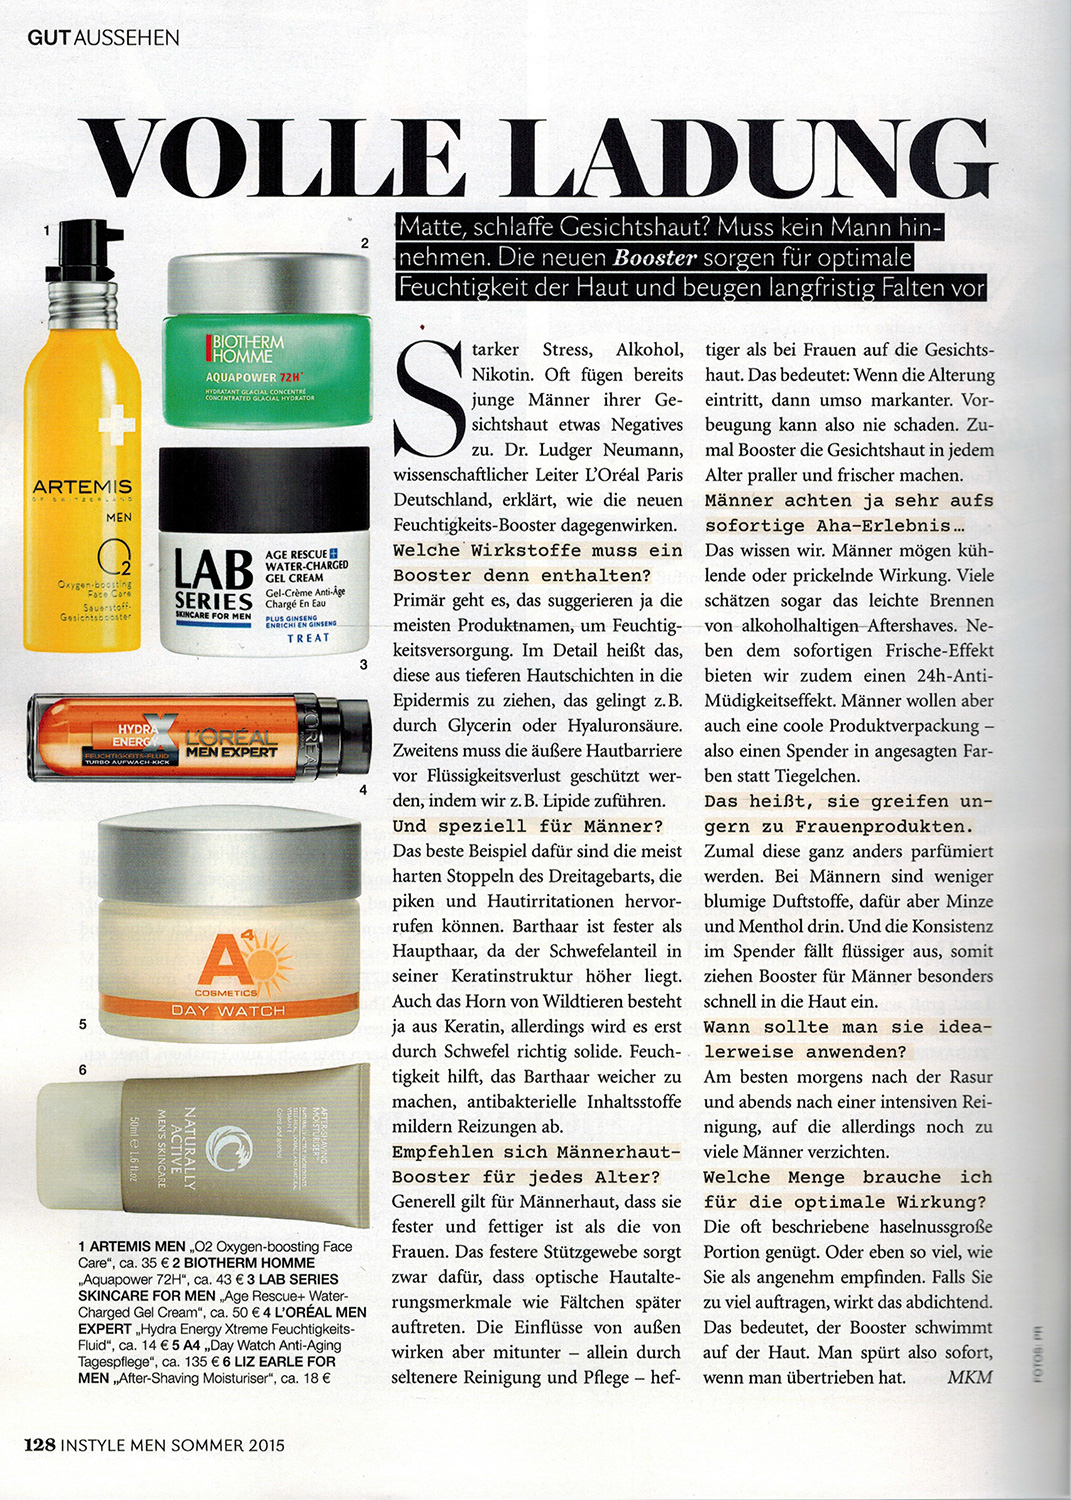 065_A4-Cosmetics_Instyle-Men-06-2015.jpg